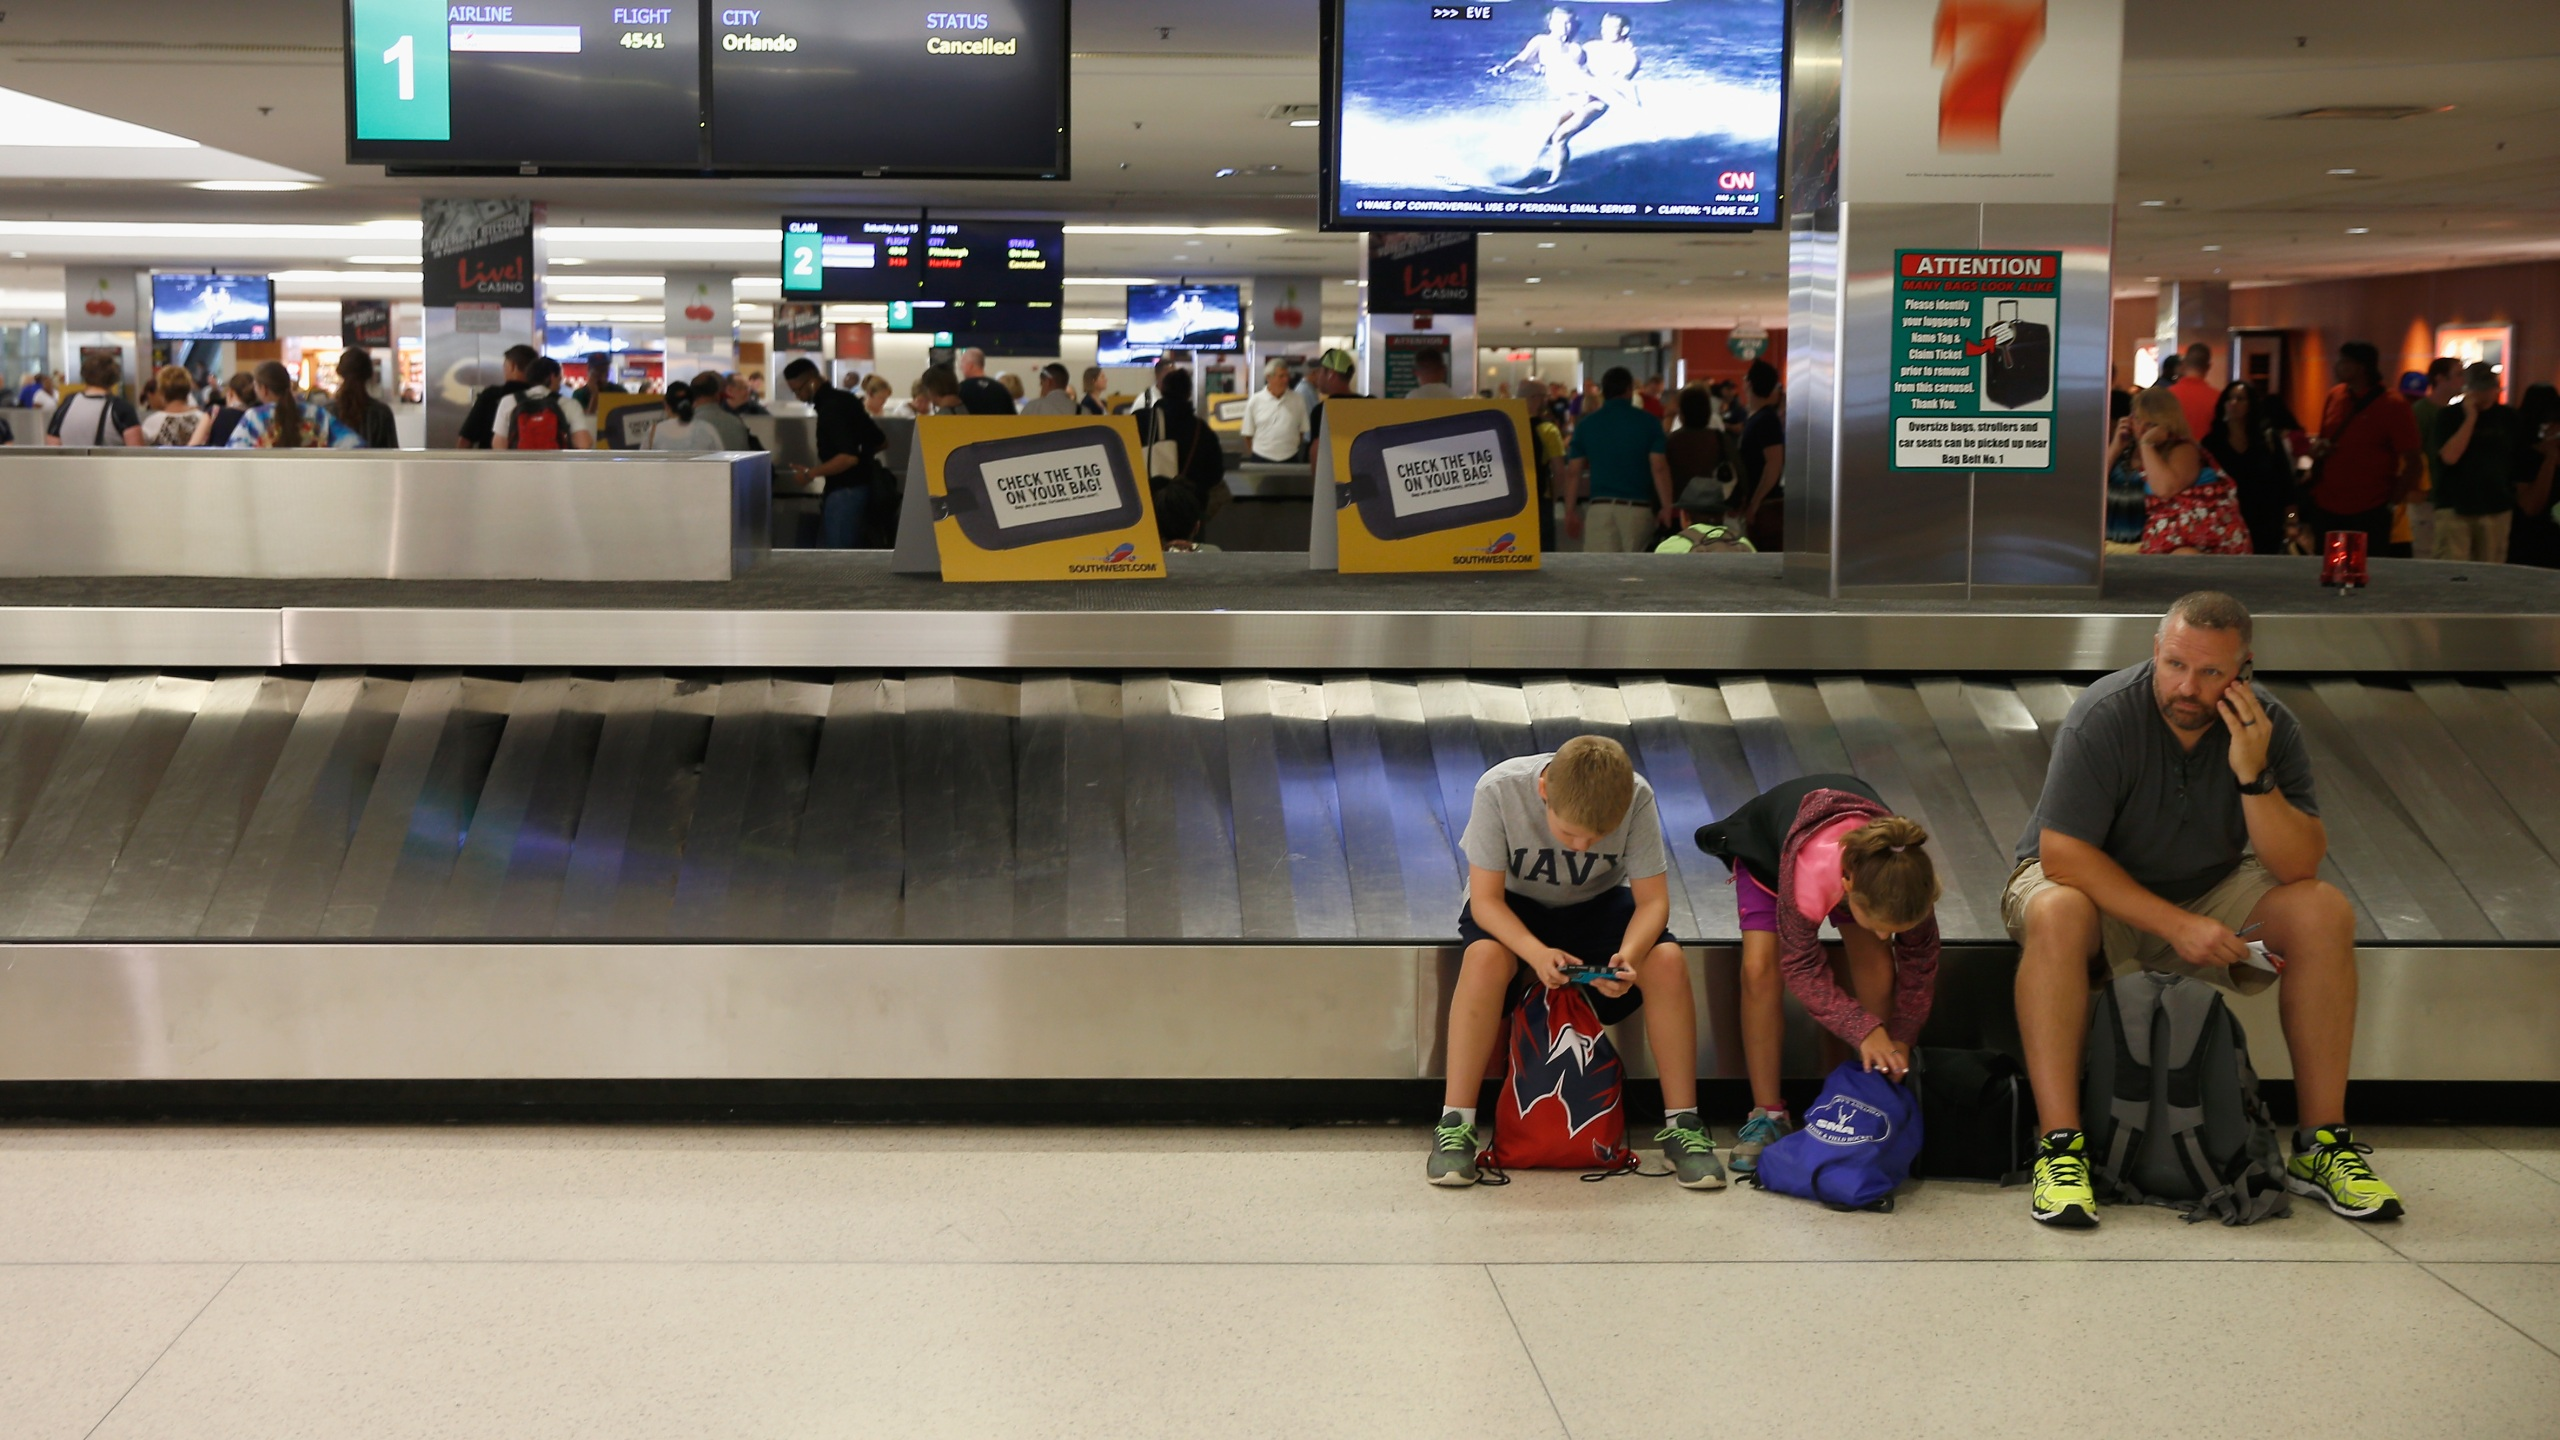 Passengers wait for bags at baggage claim in Baltimore/Washington International Thurgood Marshall Airport in Maryland in this Aug. 15, 2015 file photo. (Rob Carr/Getty Images)